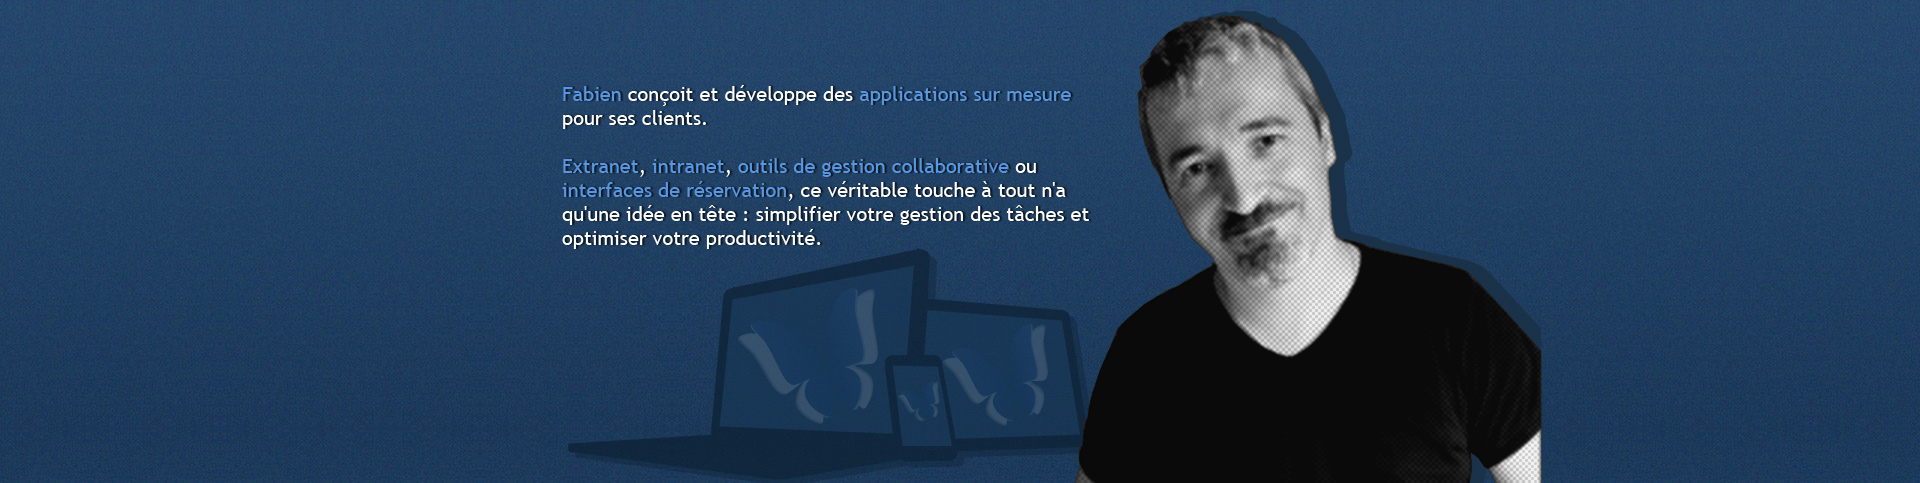 fabien-developpeur-web